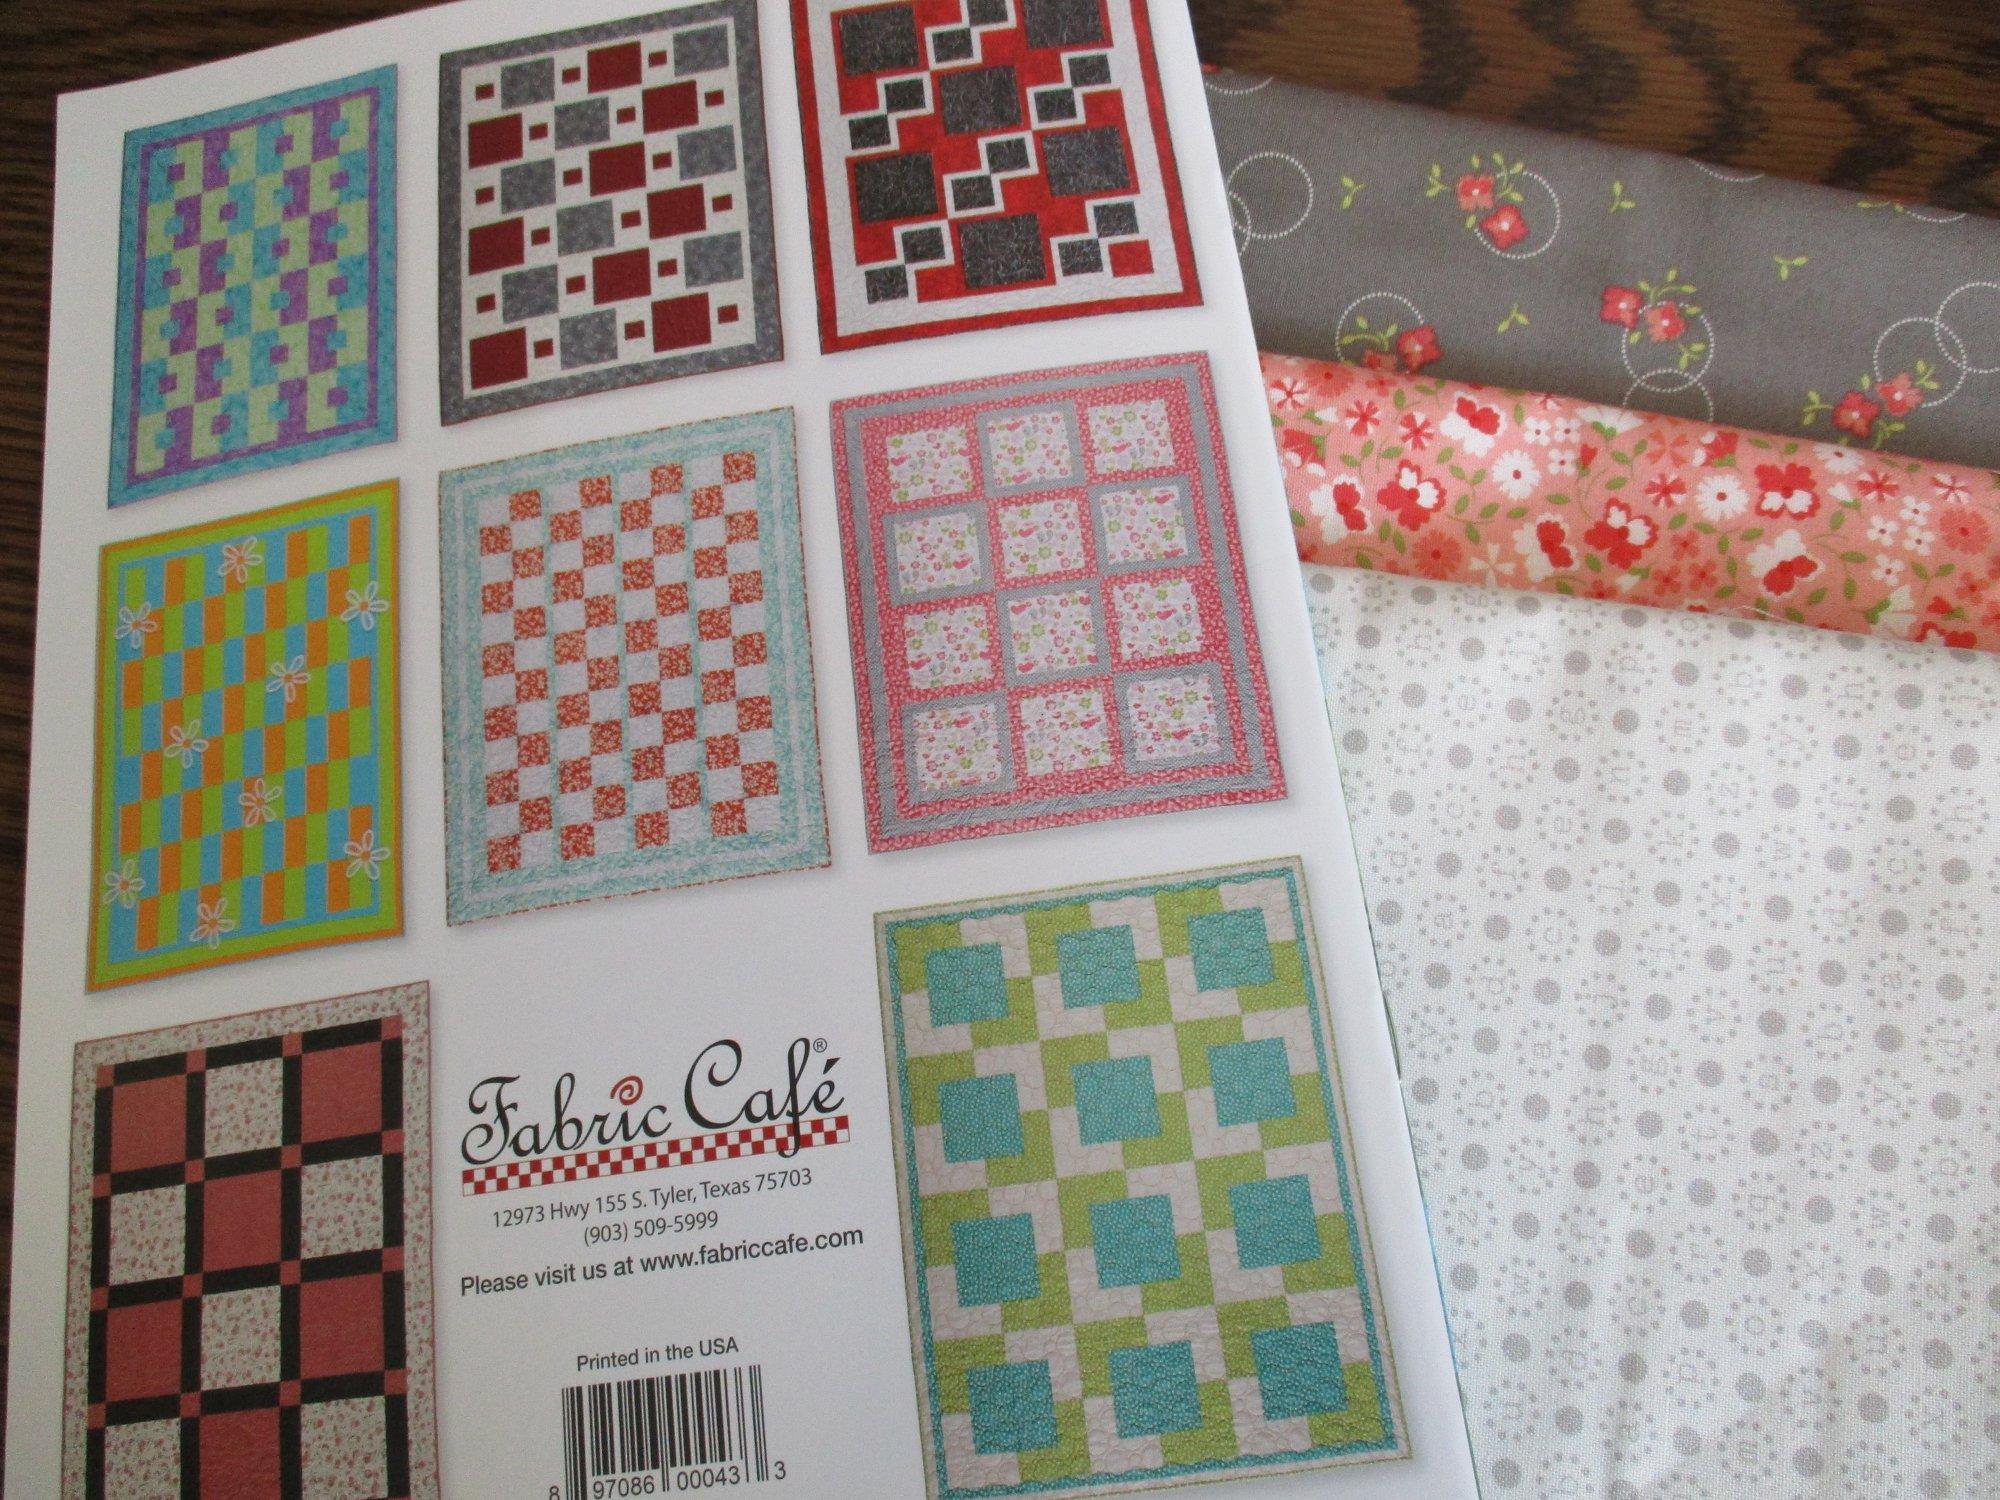 Easy Peasy 3-Yard Quilts quilt kit